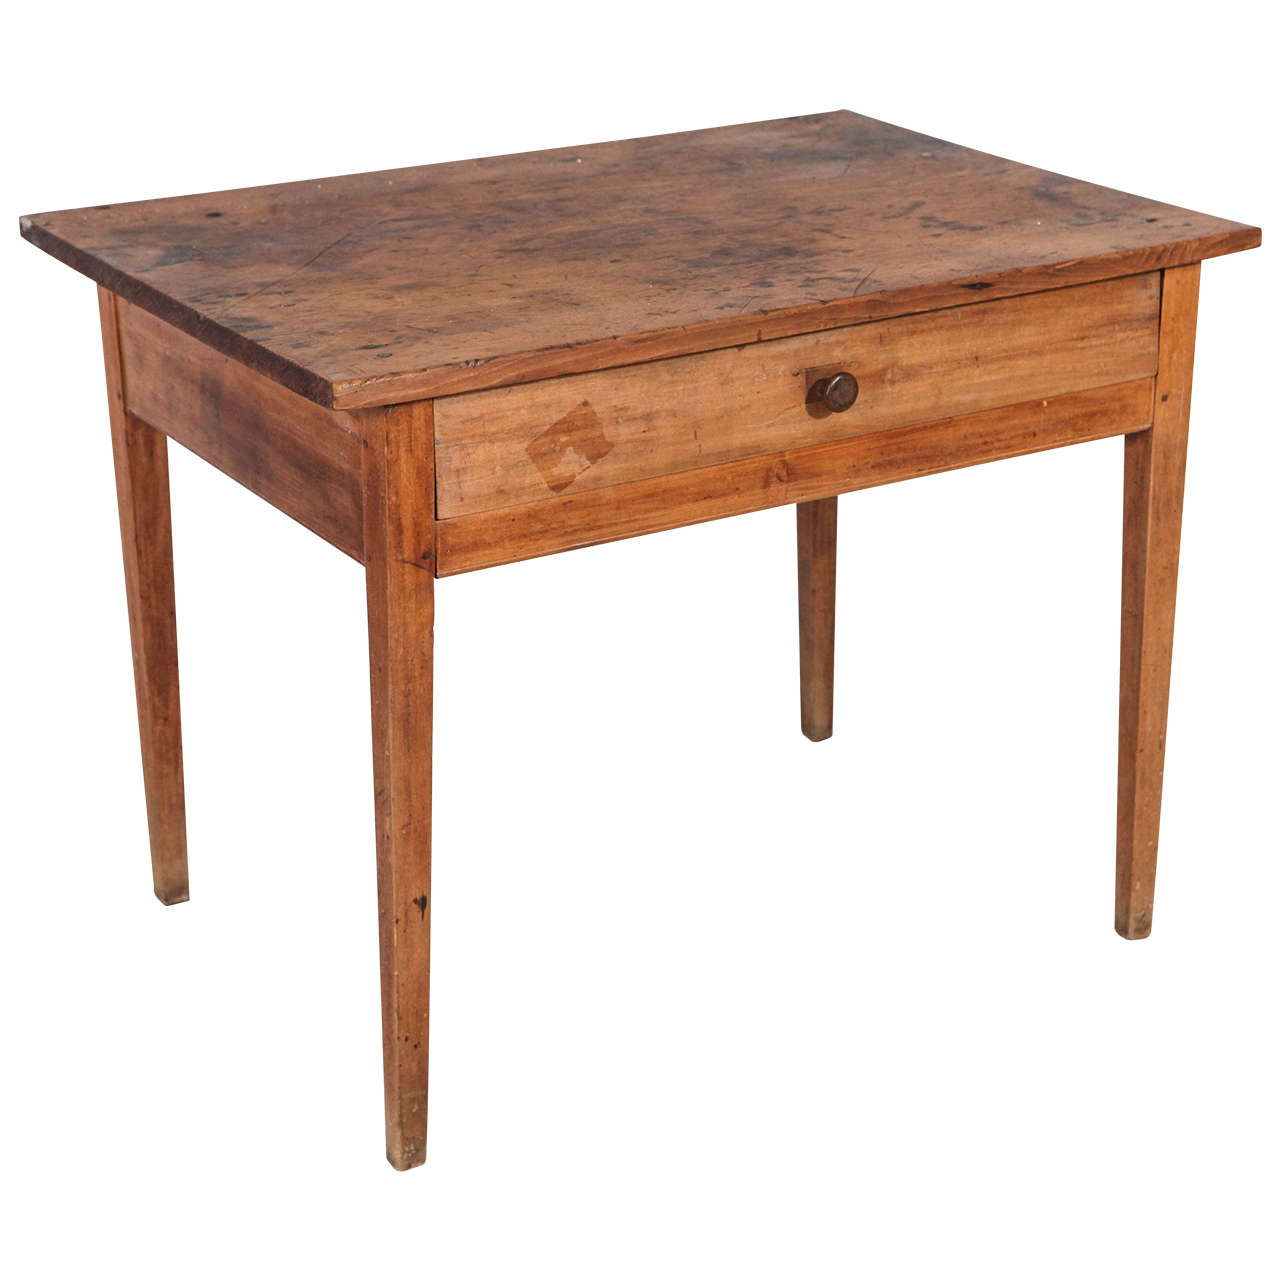 low rustic one drawer occasional table at 1stdibs